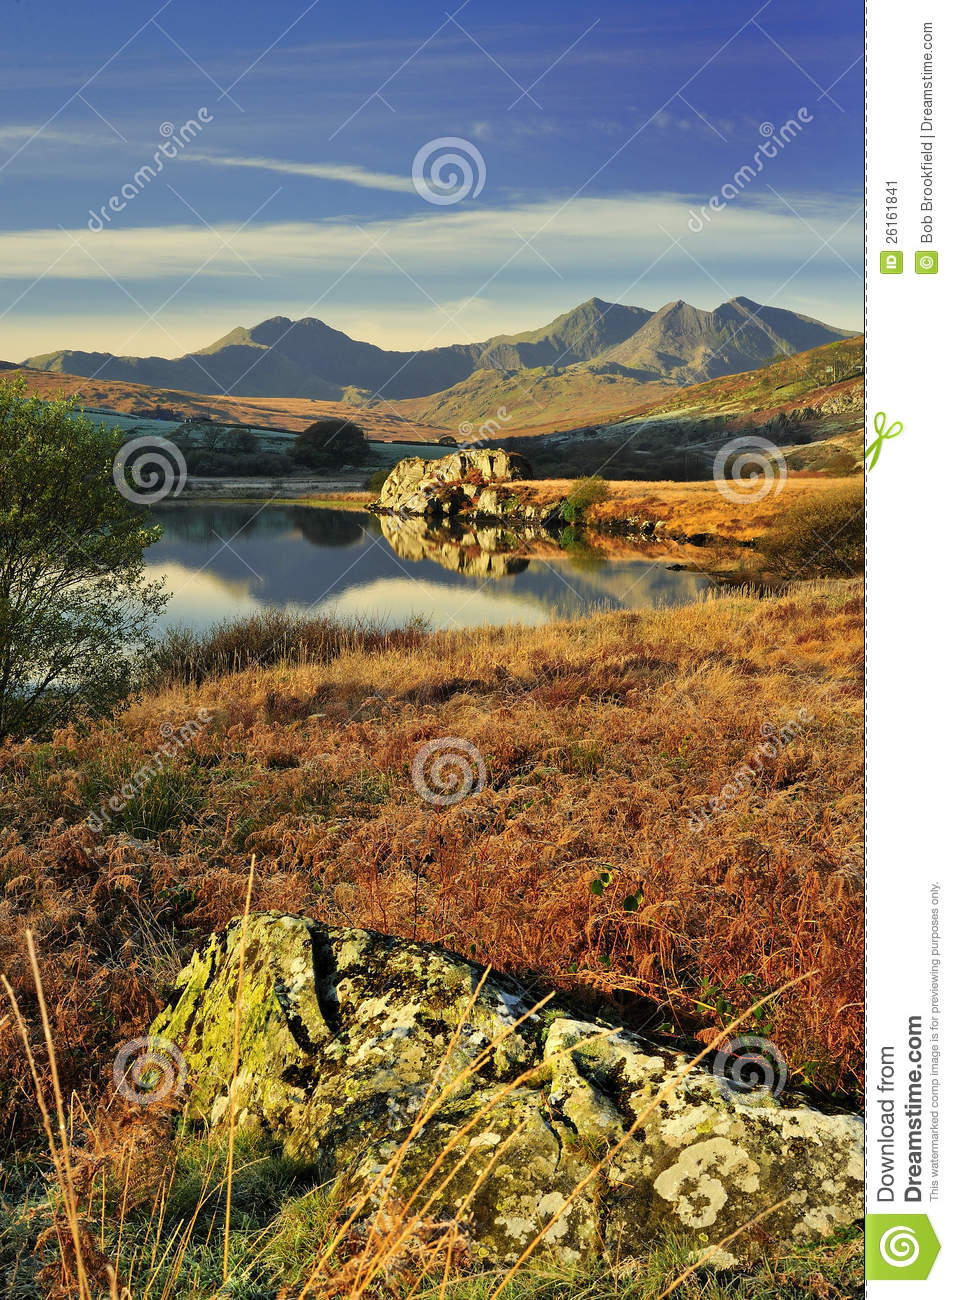 Morning light, Snowdon range, Wales